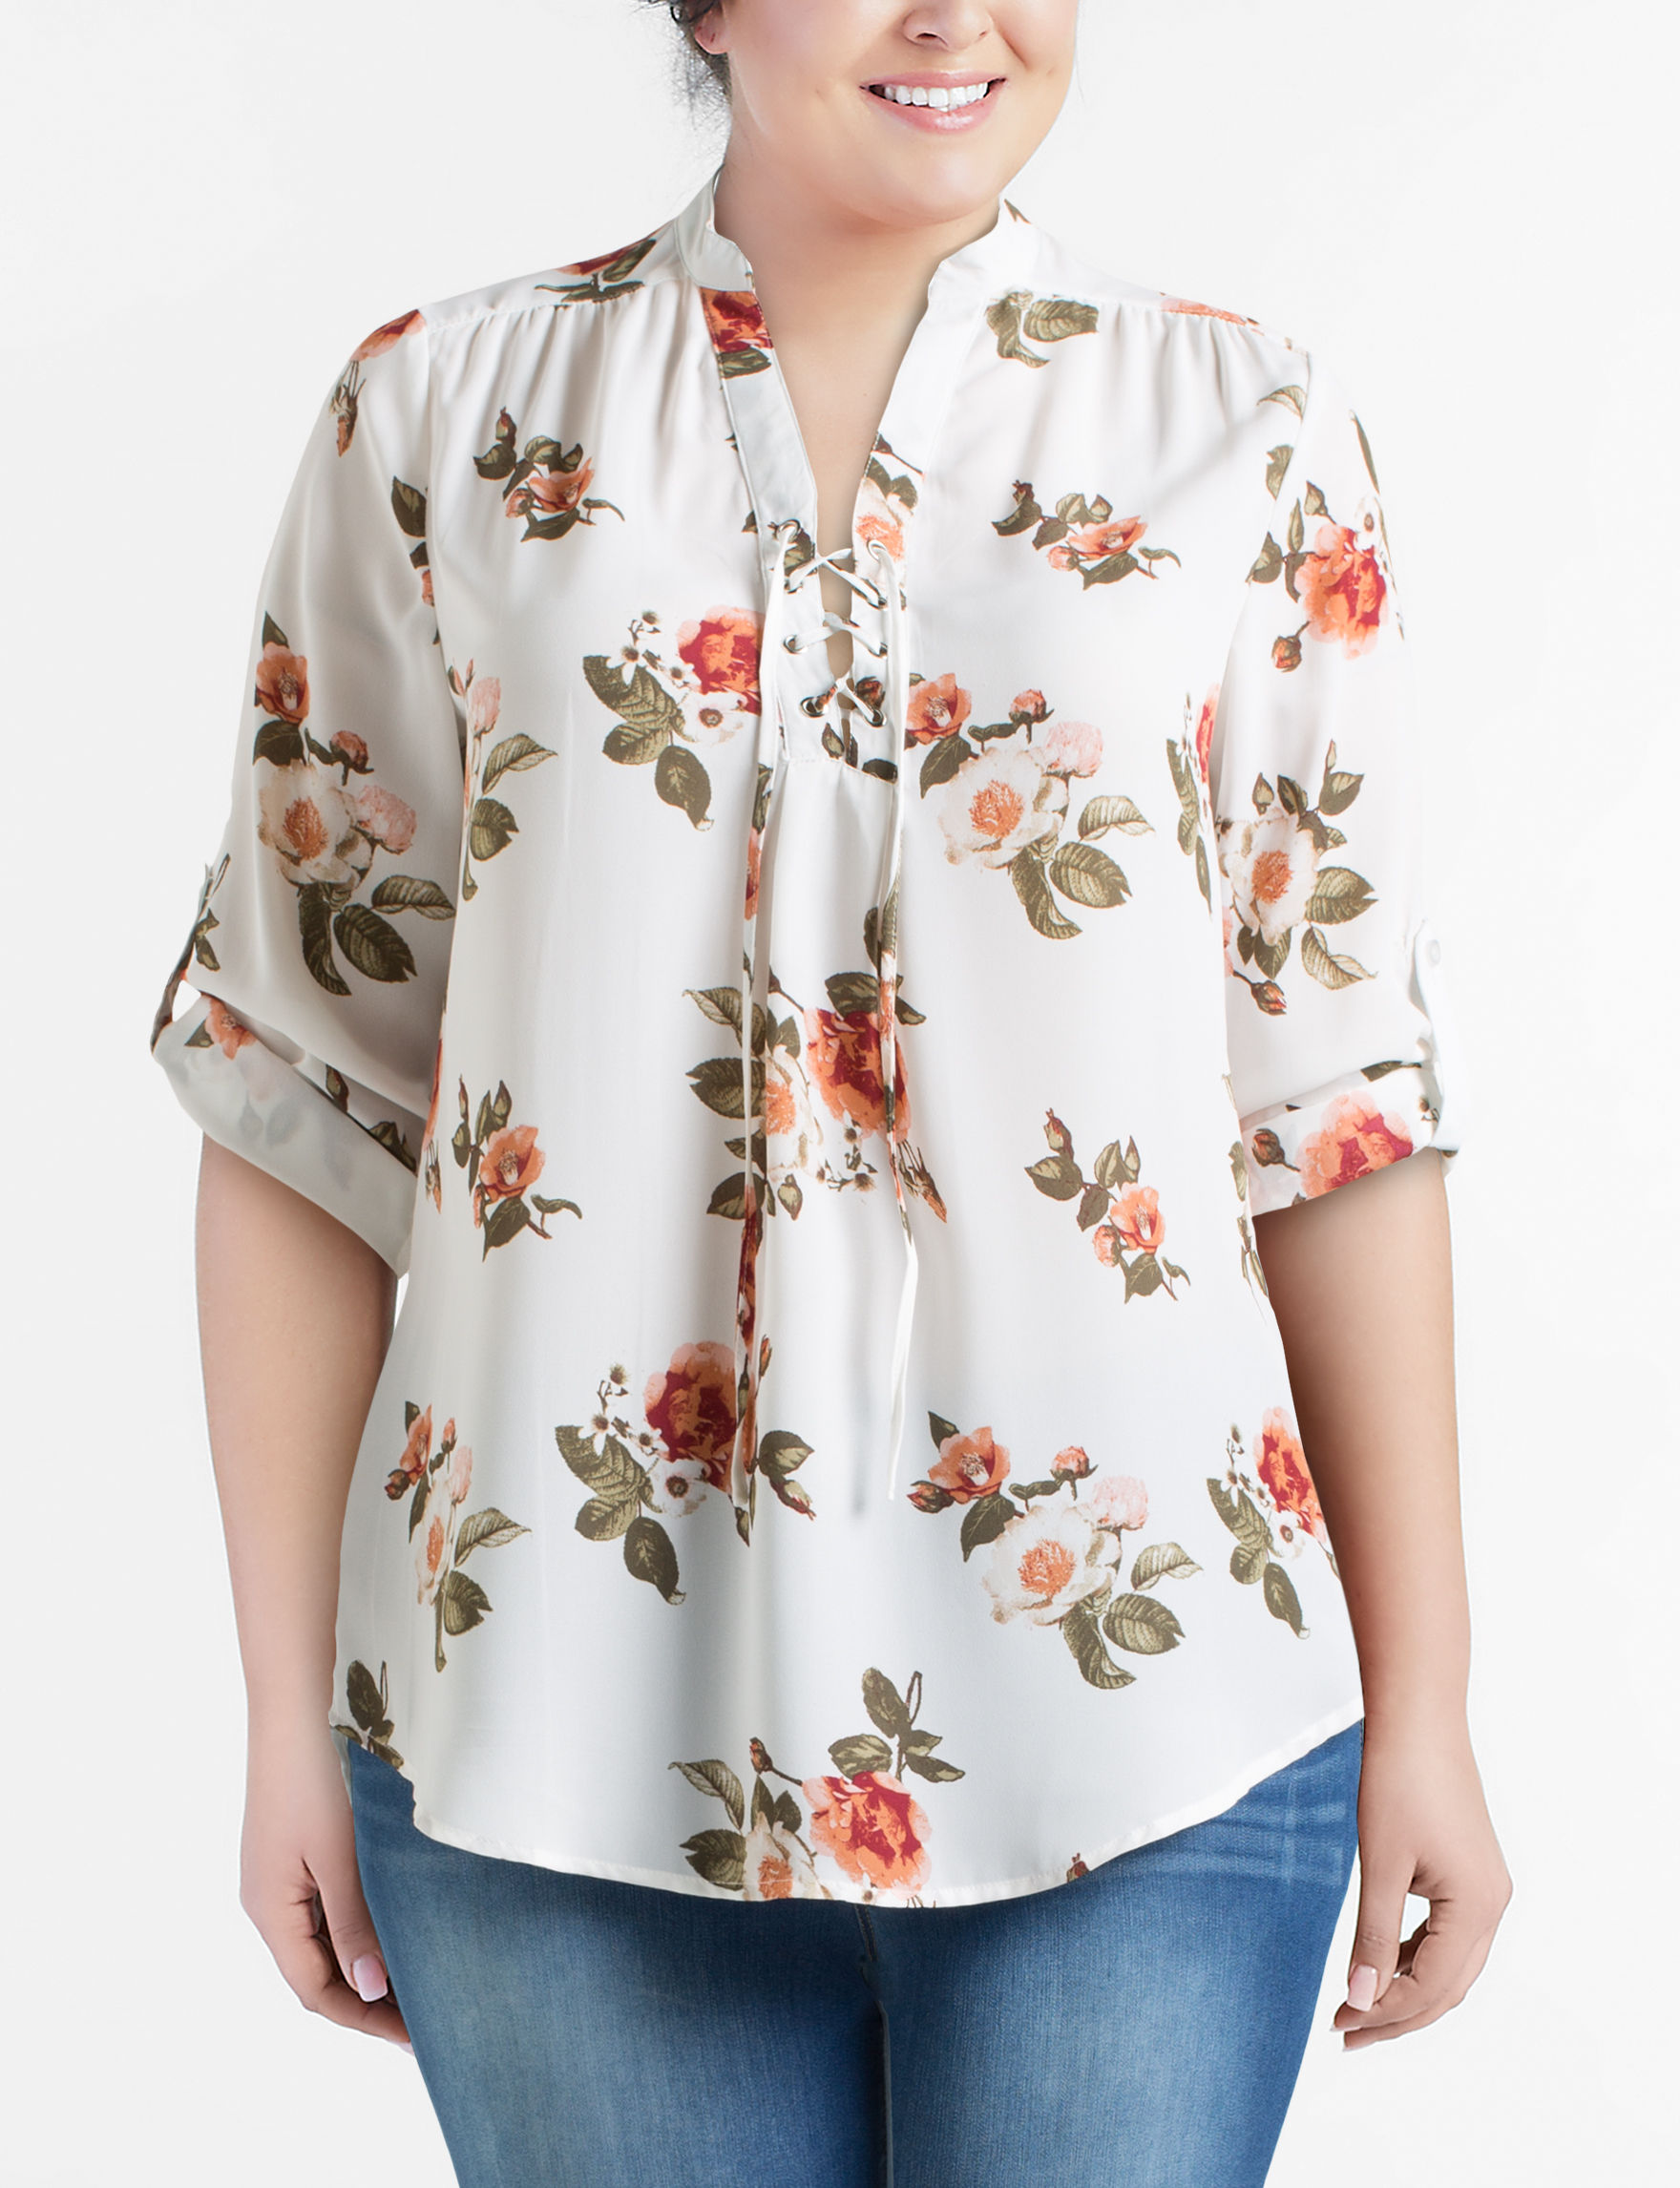 Justify Ivory Floral Shirts & Blouses